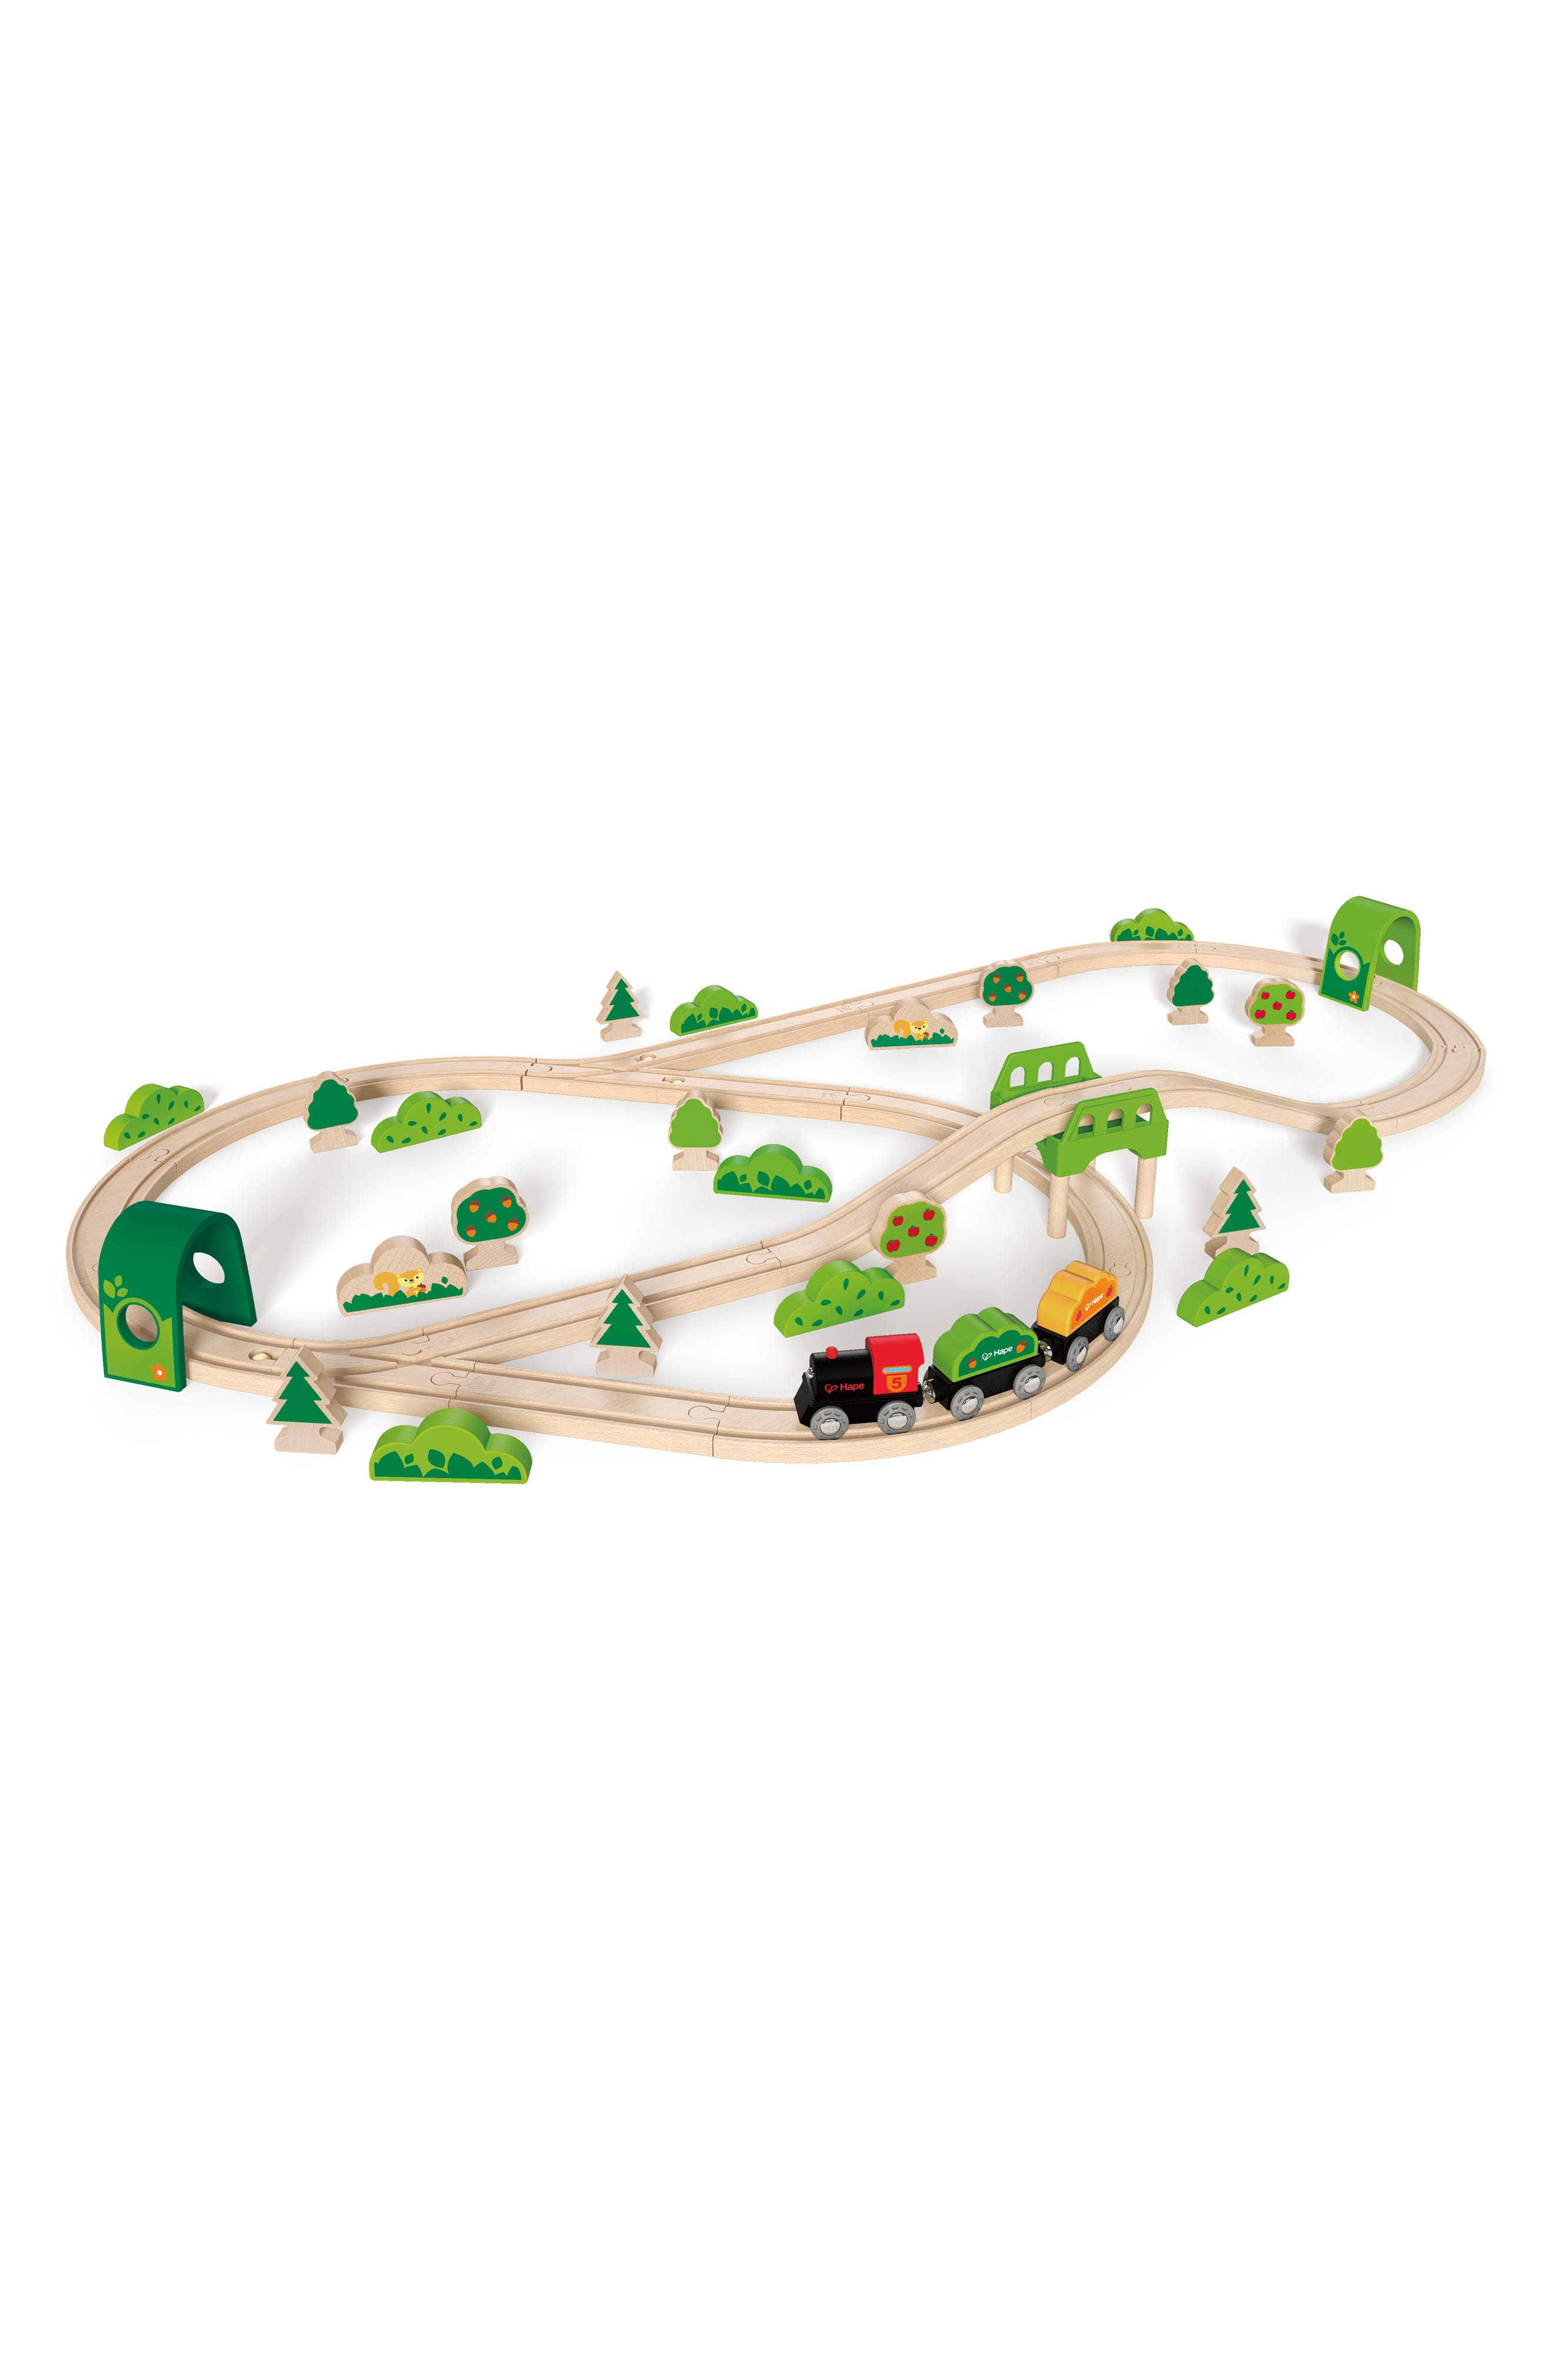 Alternate Image 1 Selected - Hape Forest Railway Wooden Train Set